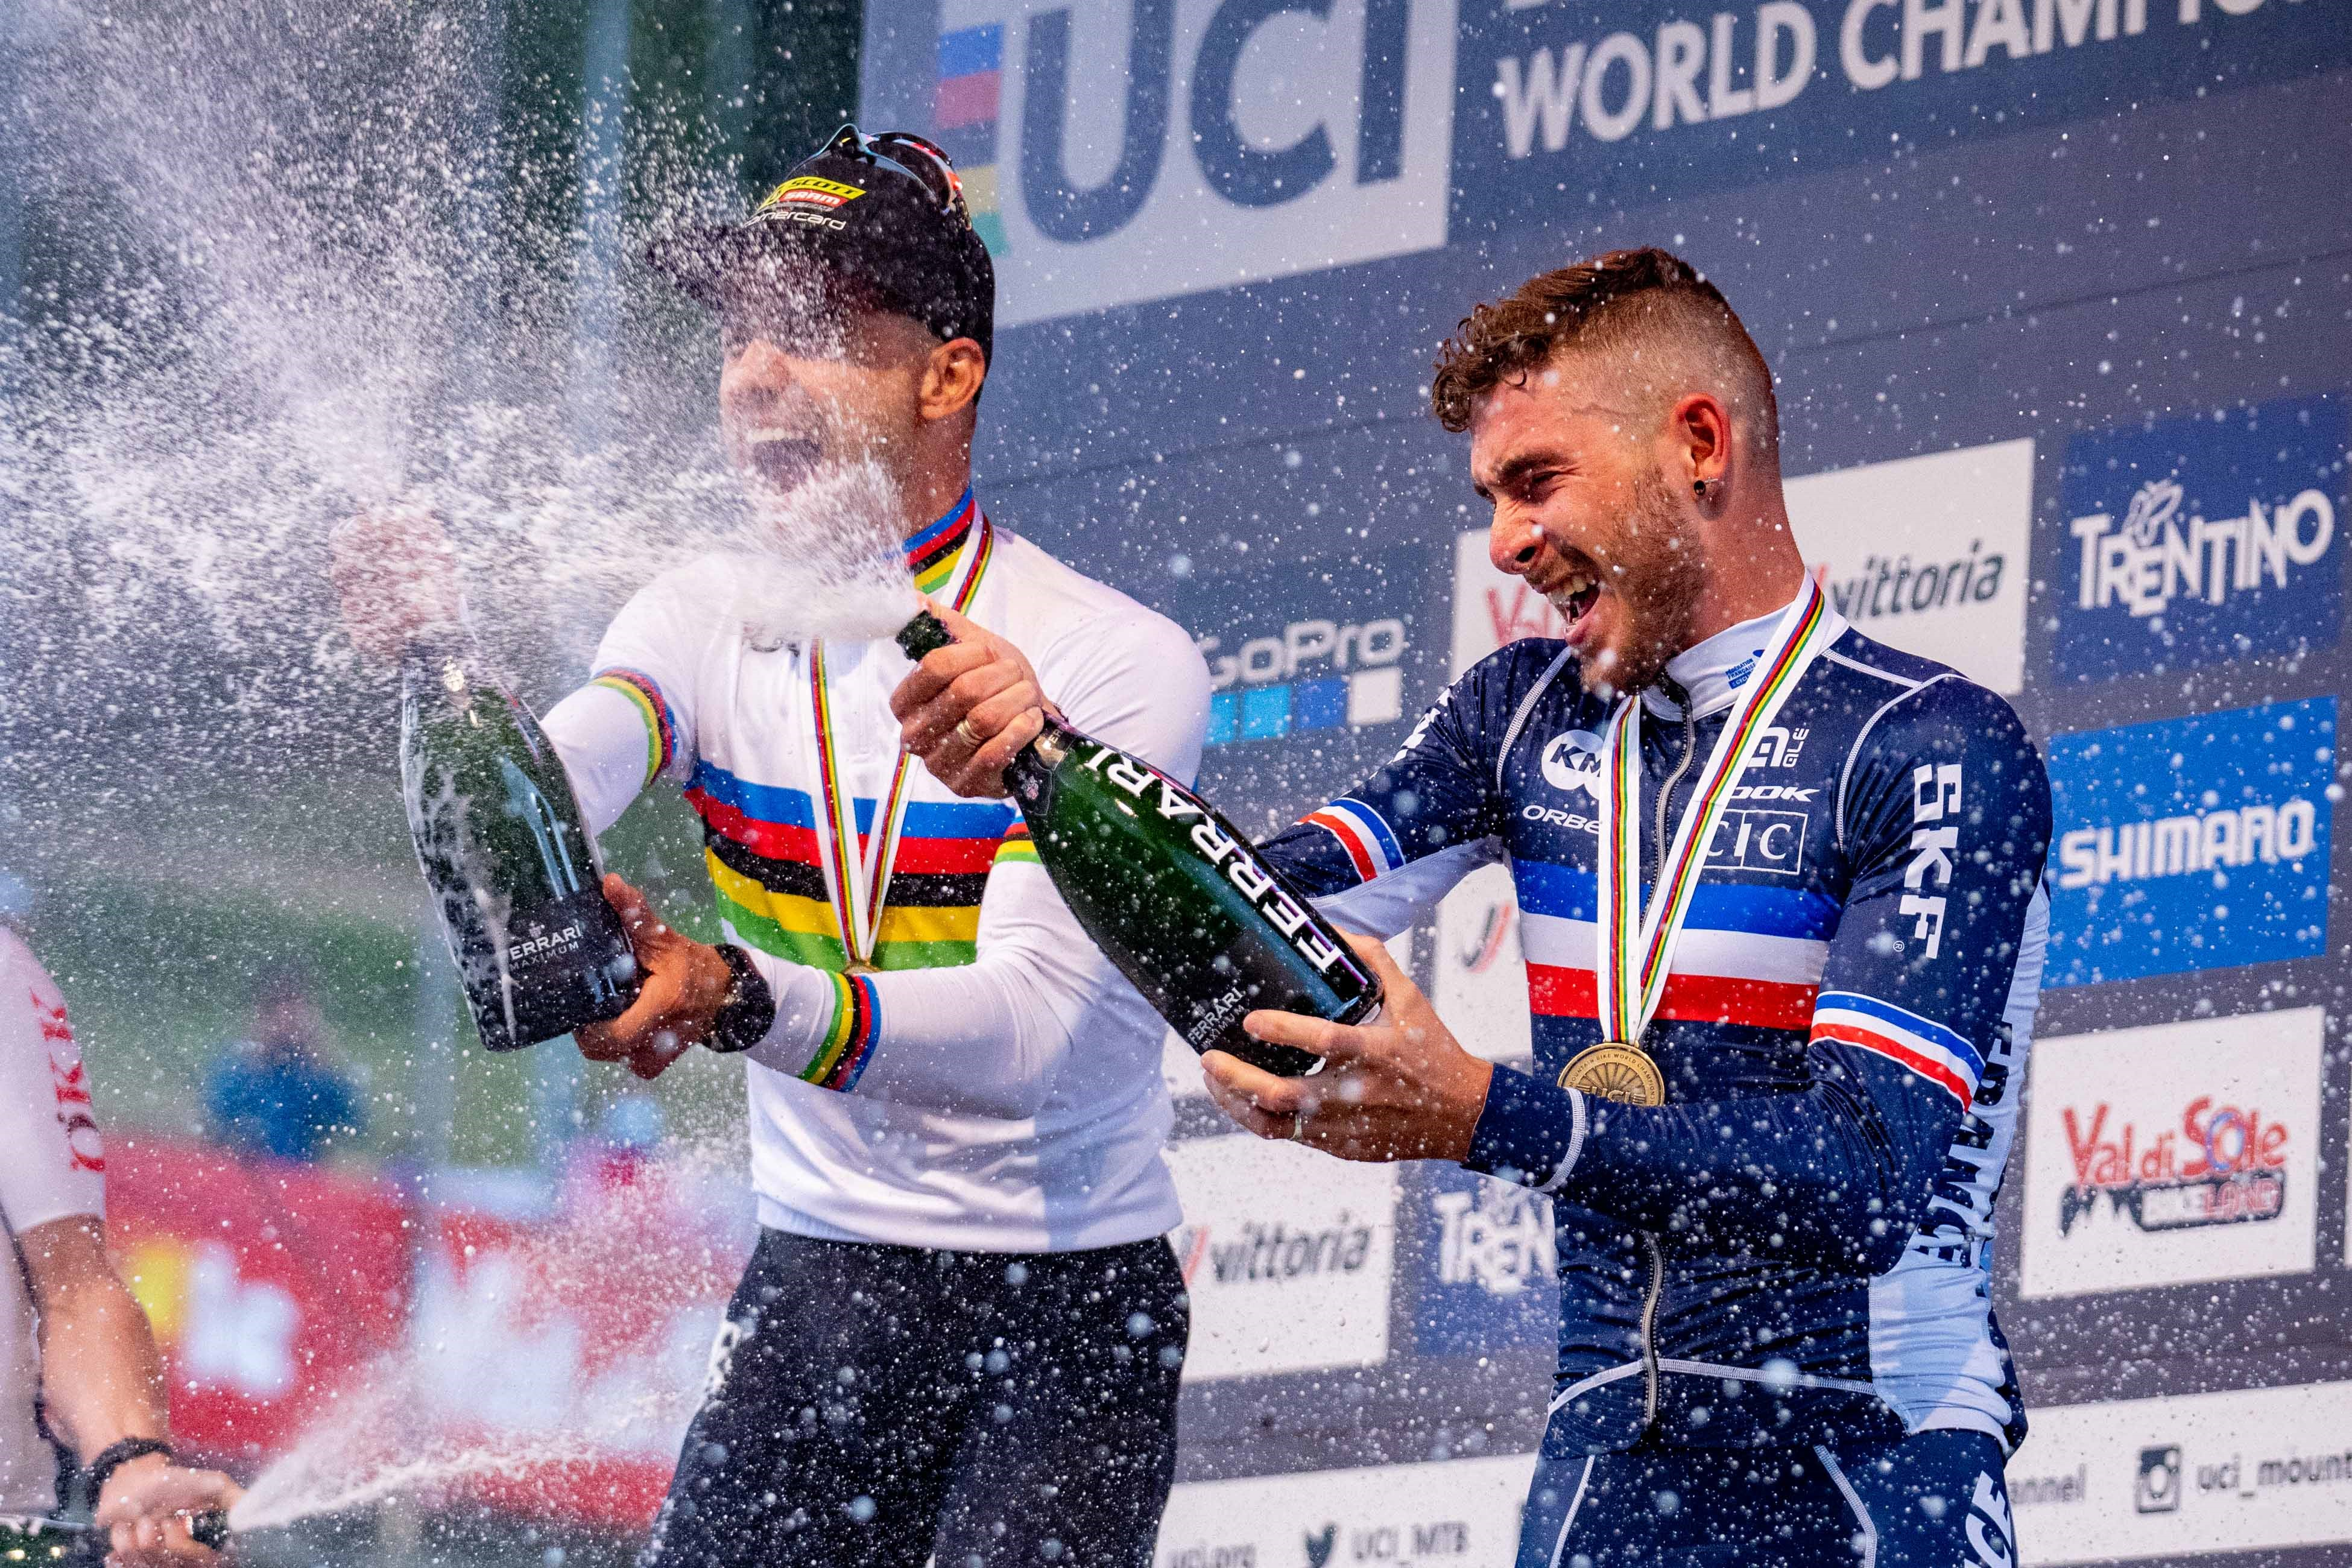 Victor Koretzky 3rd of the World Championships in Val di Sole